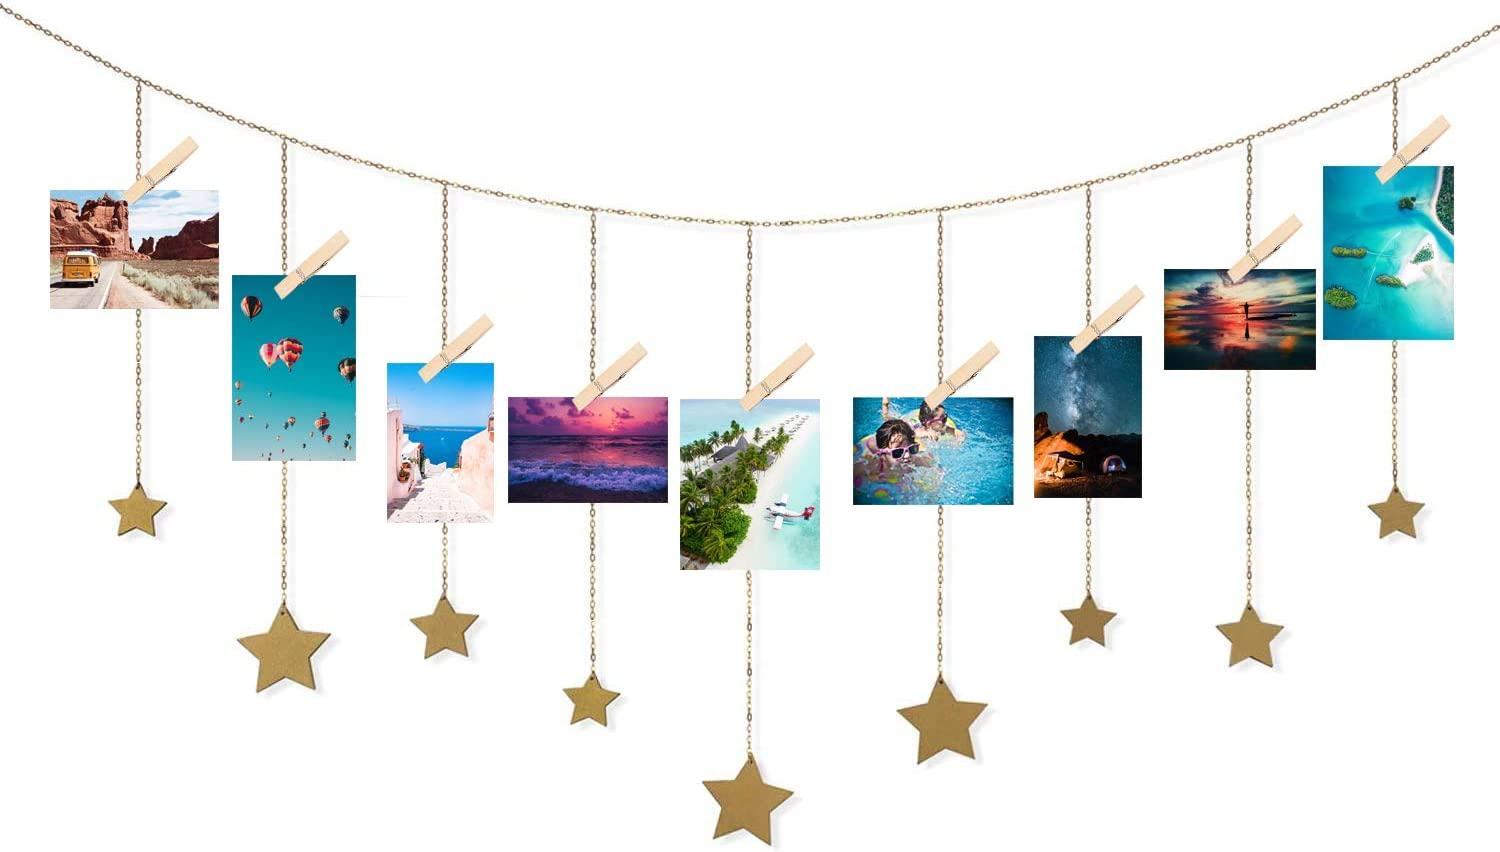 Wood Stars Decor Wall Decorations, VIWIPOW Hanging Photo Display with Chains Picture Frame Collage with 25 Wood Clips Wall Art Decoration for Wedding, Bedroom, Home, Living Room Apartment or Christmas